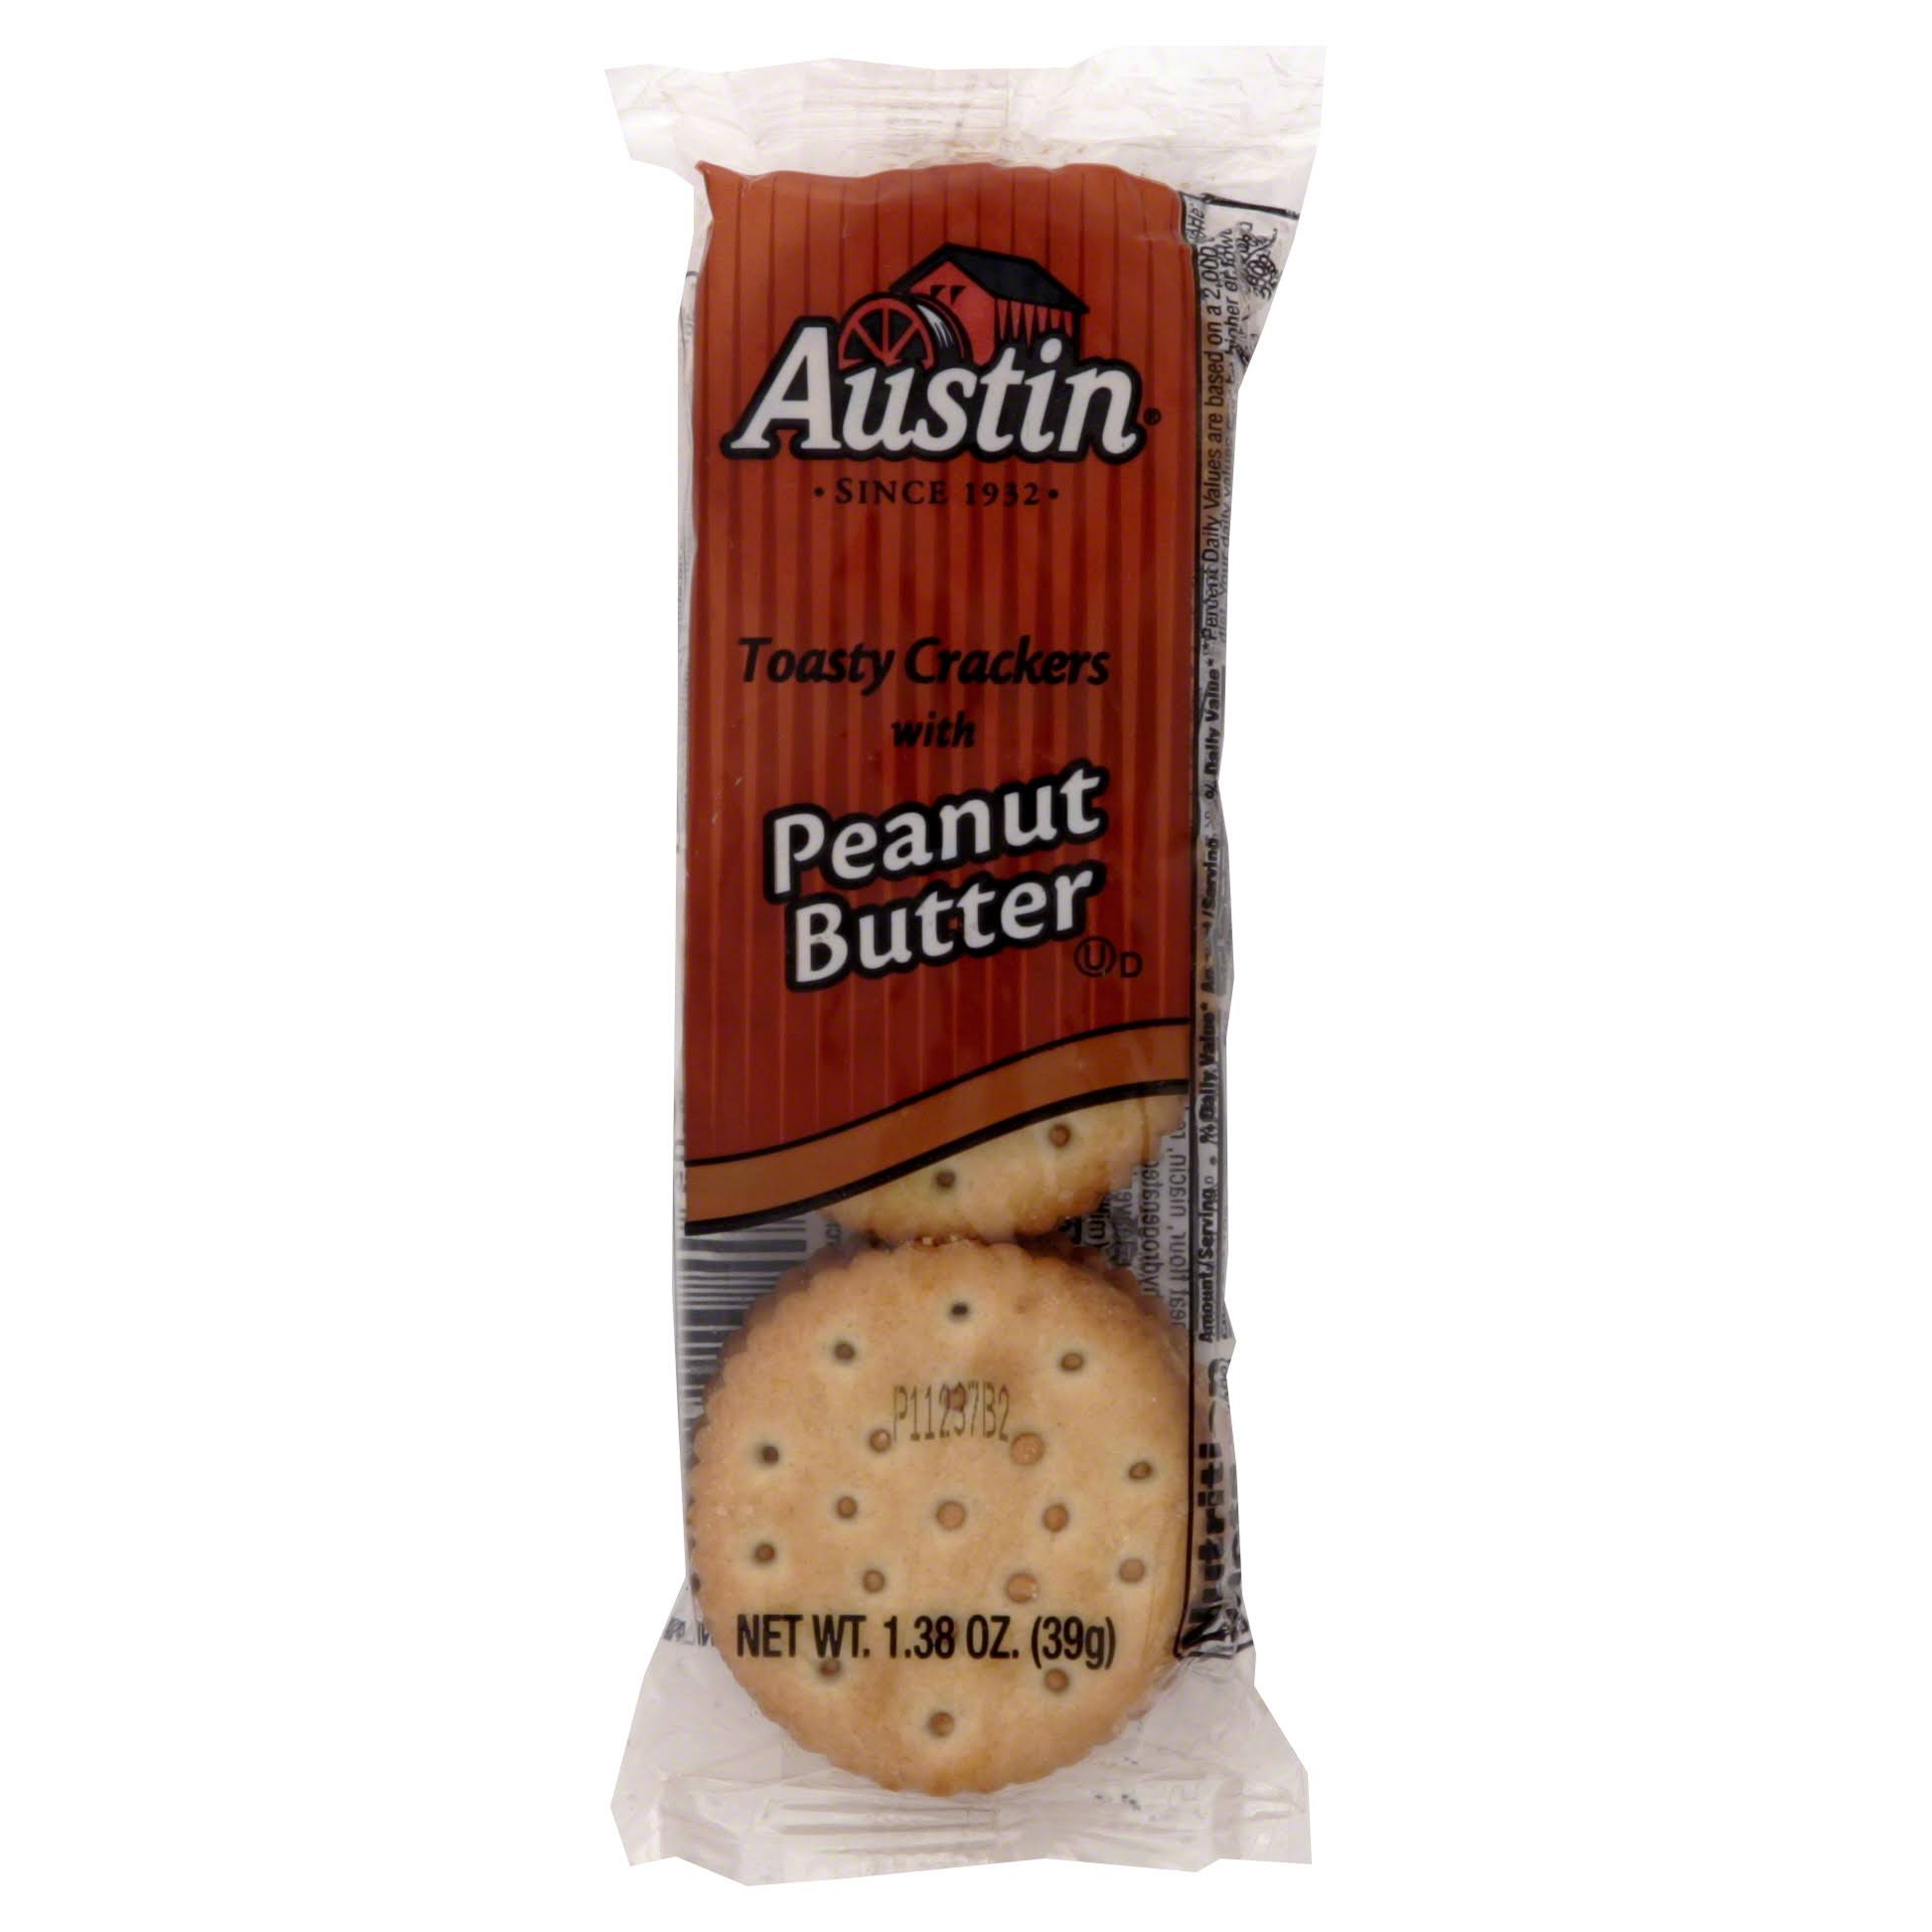 Austin Toasty Crackers with Peanut Butter - 1.38oz